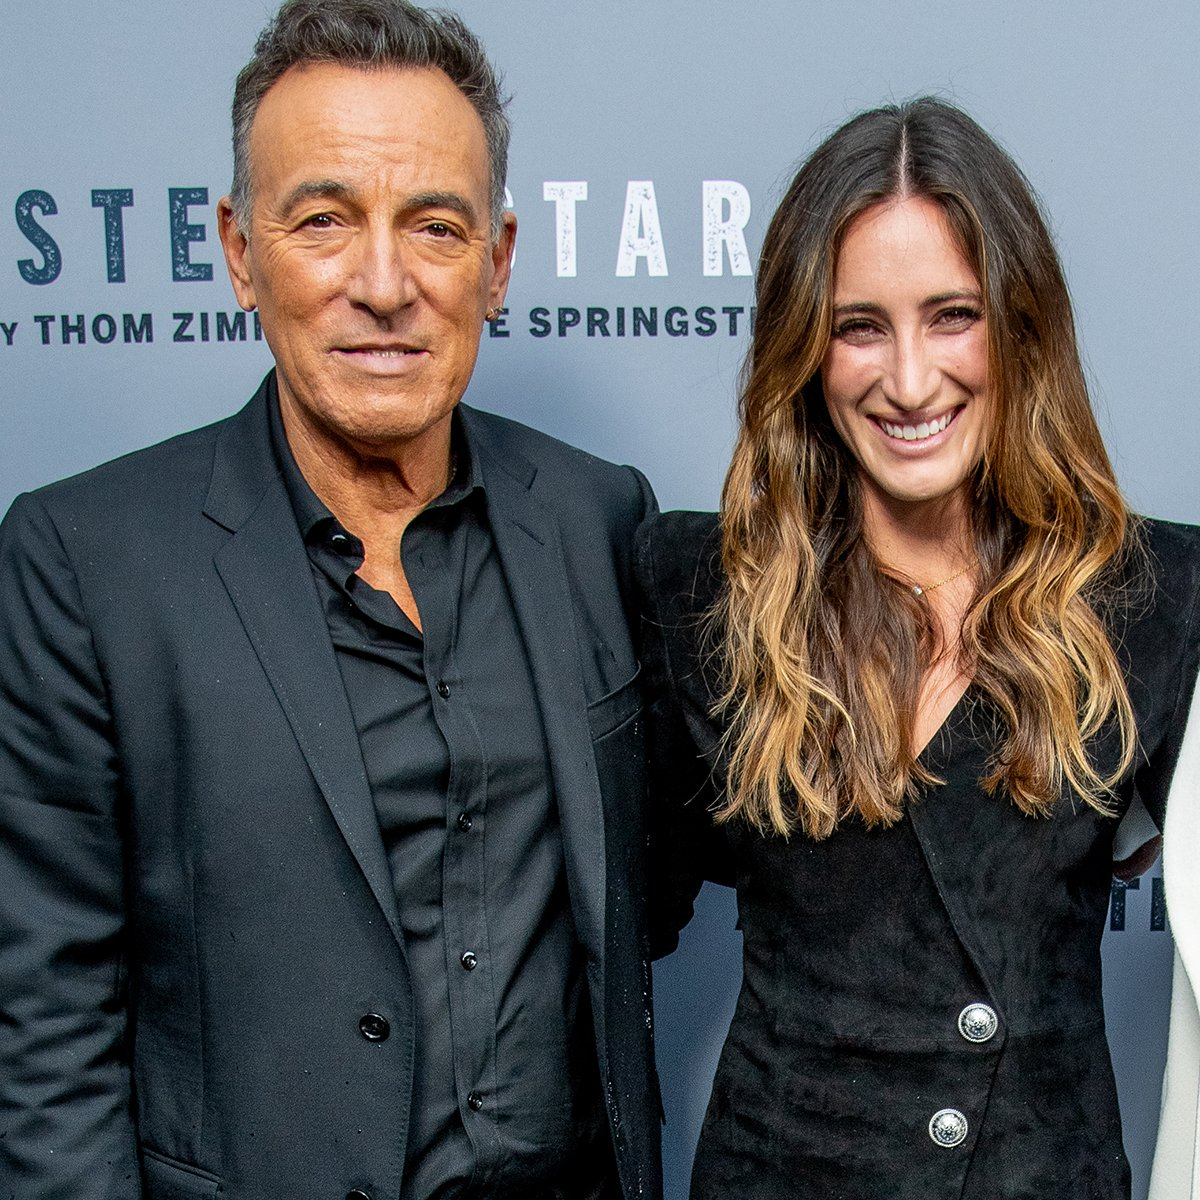 Bruce Springsteen's Daughter Jessica Speaks Out After Failing to Qualify in Olympic Debut